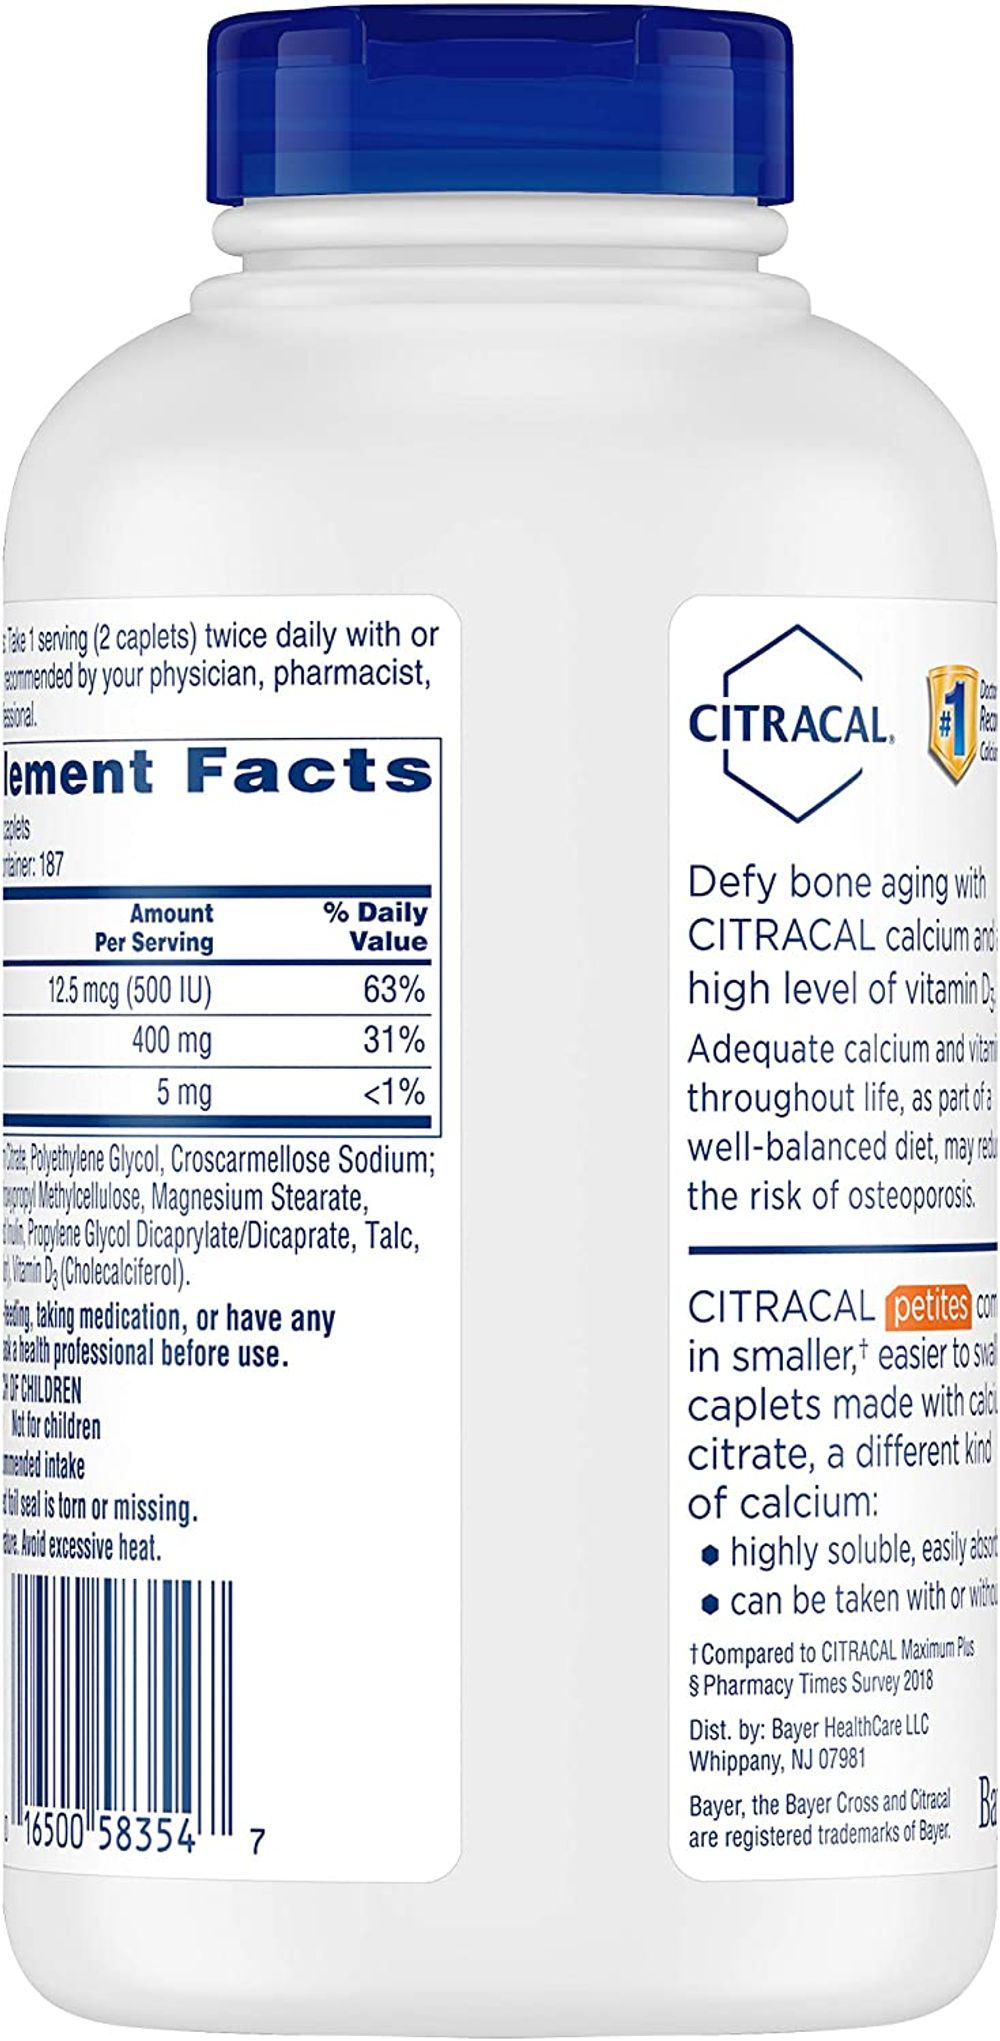 Citracal Petites, Highly Soluble, Easily Digested, 400 mg Calcium Citrate with 500 IU Vitamin D3, Bone Health Supplement for Adults, Relatively Small Easy-to-Swallow Caplets, 375 Count